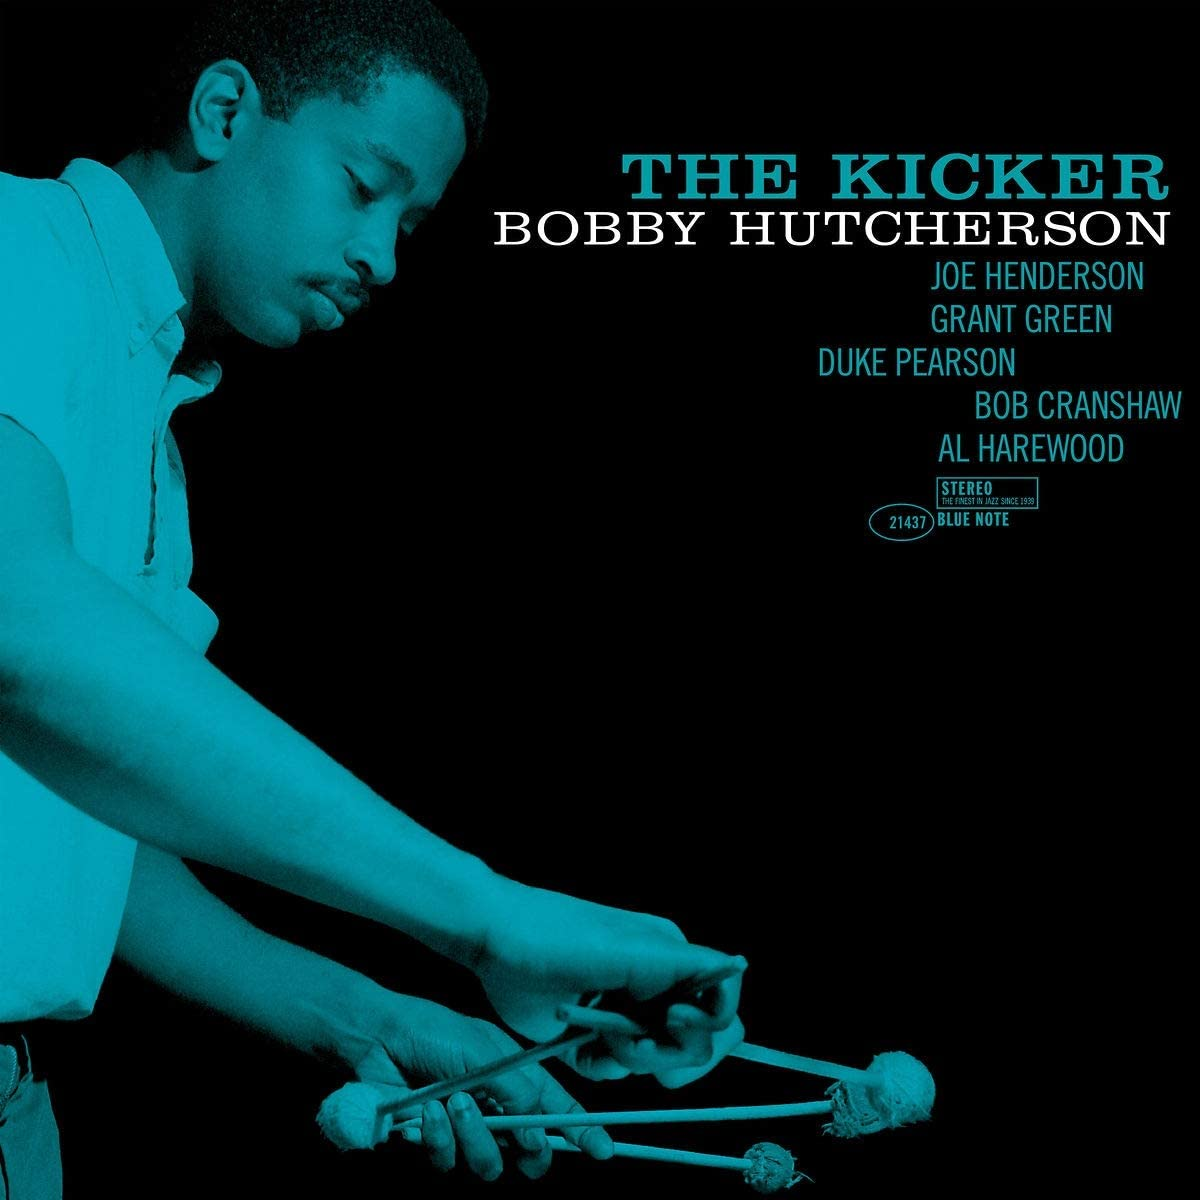 Hutcherson, Bobby/The Kicker (Blue Note Tone Poet) [LP]